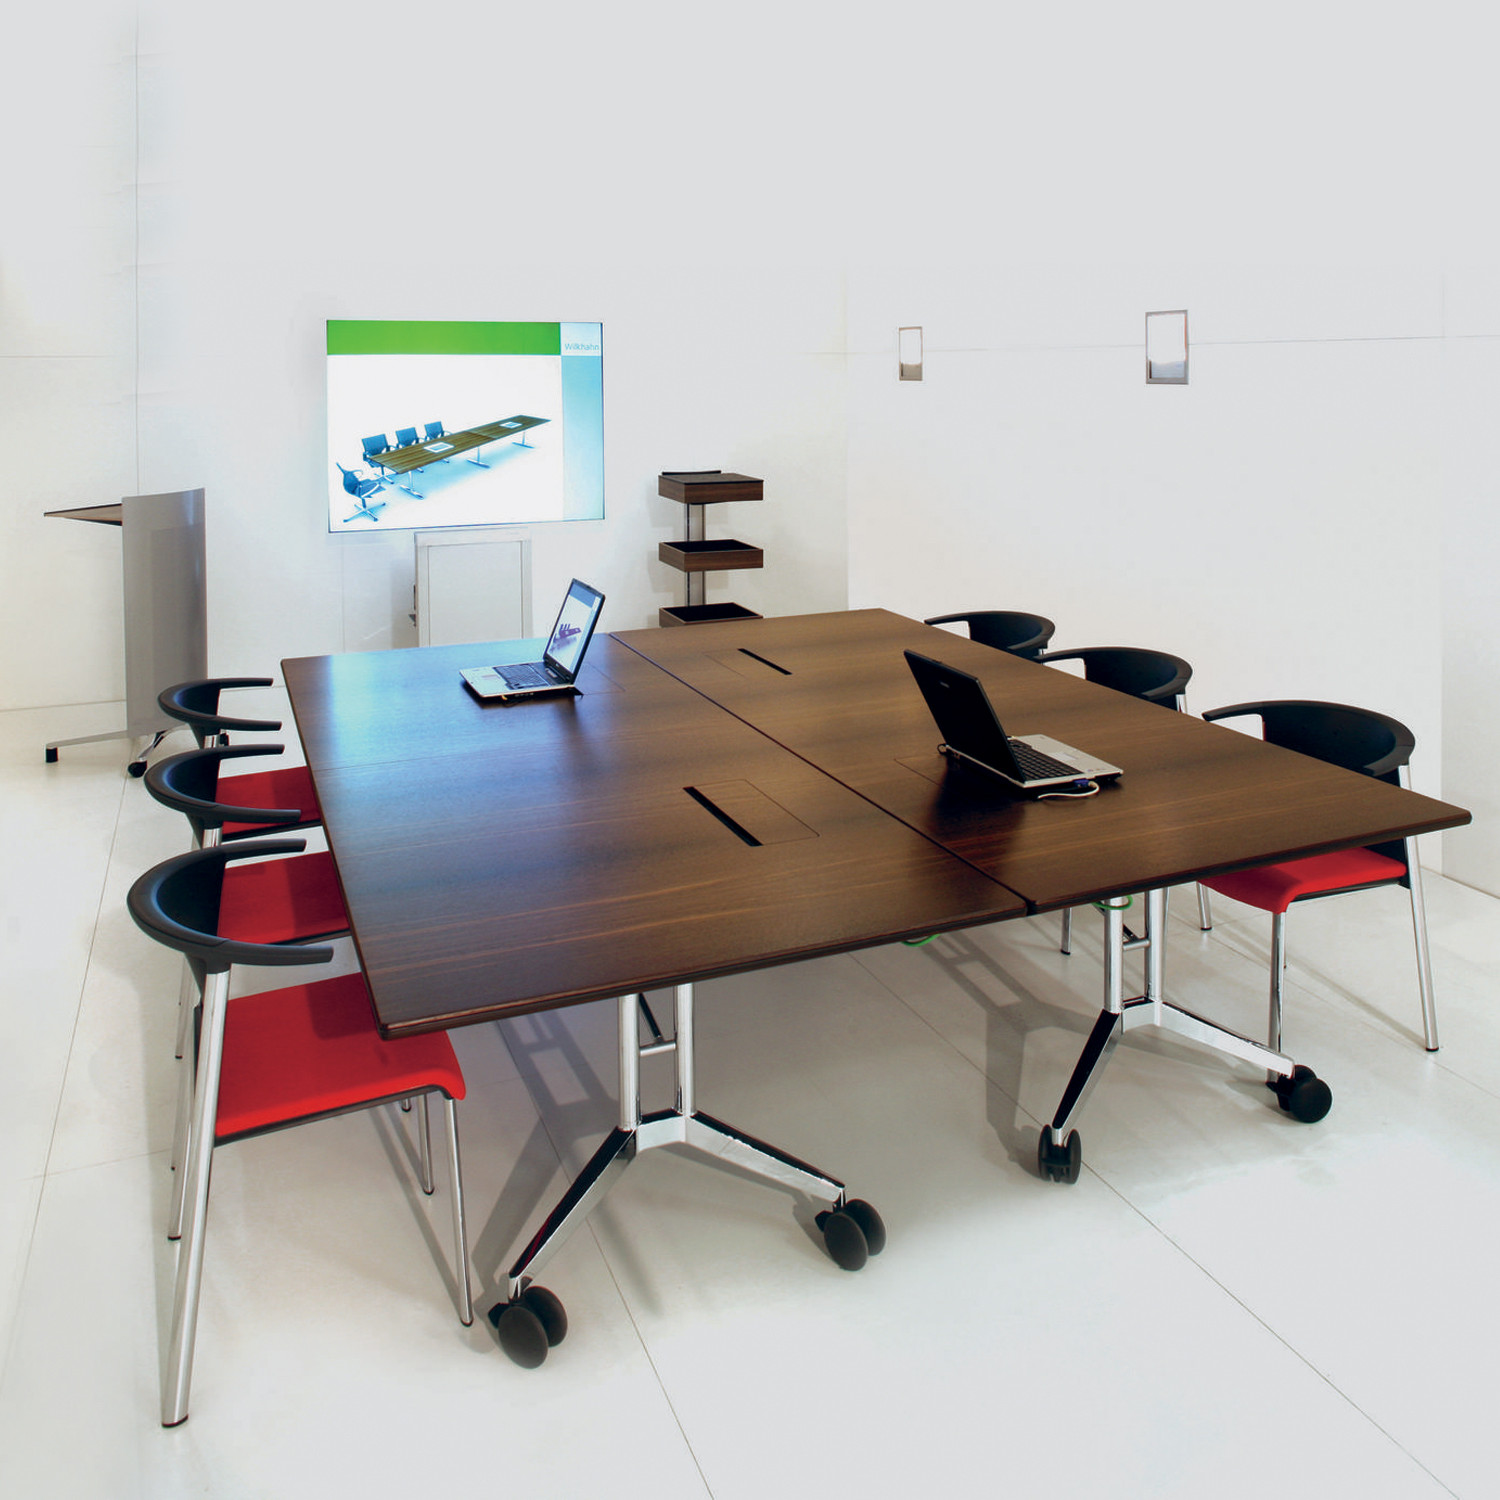 Confair Multifunctional Meeting Tables